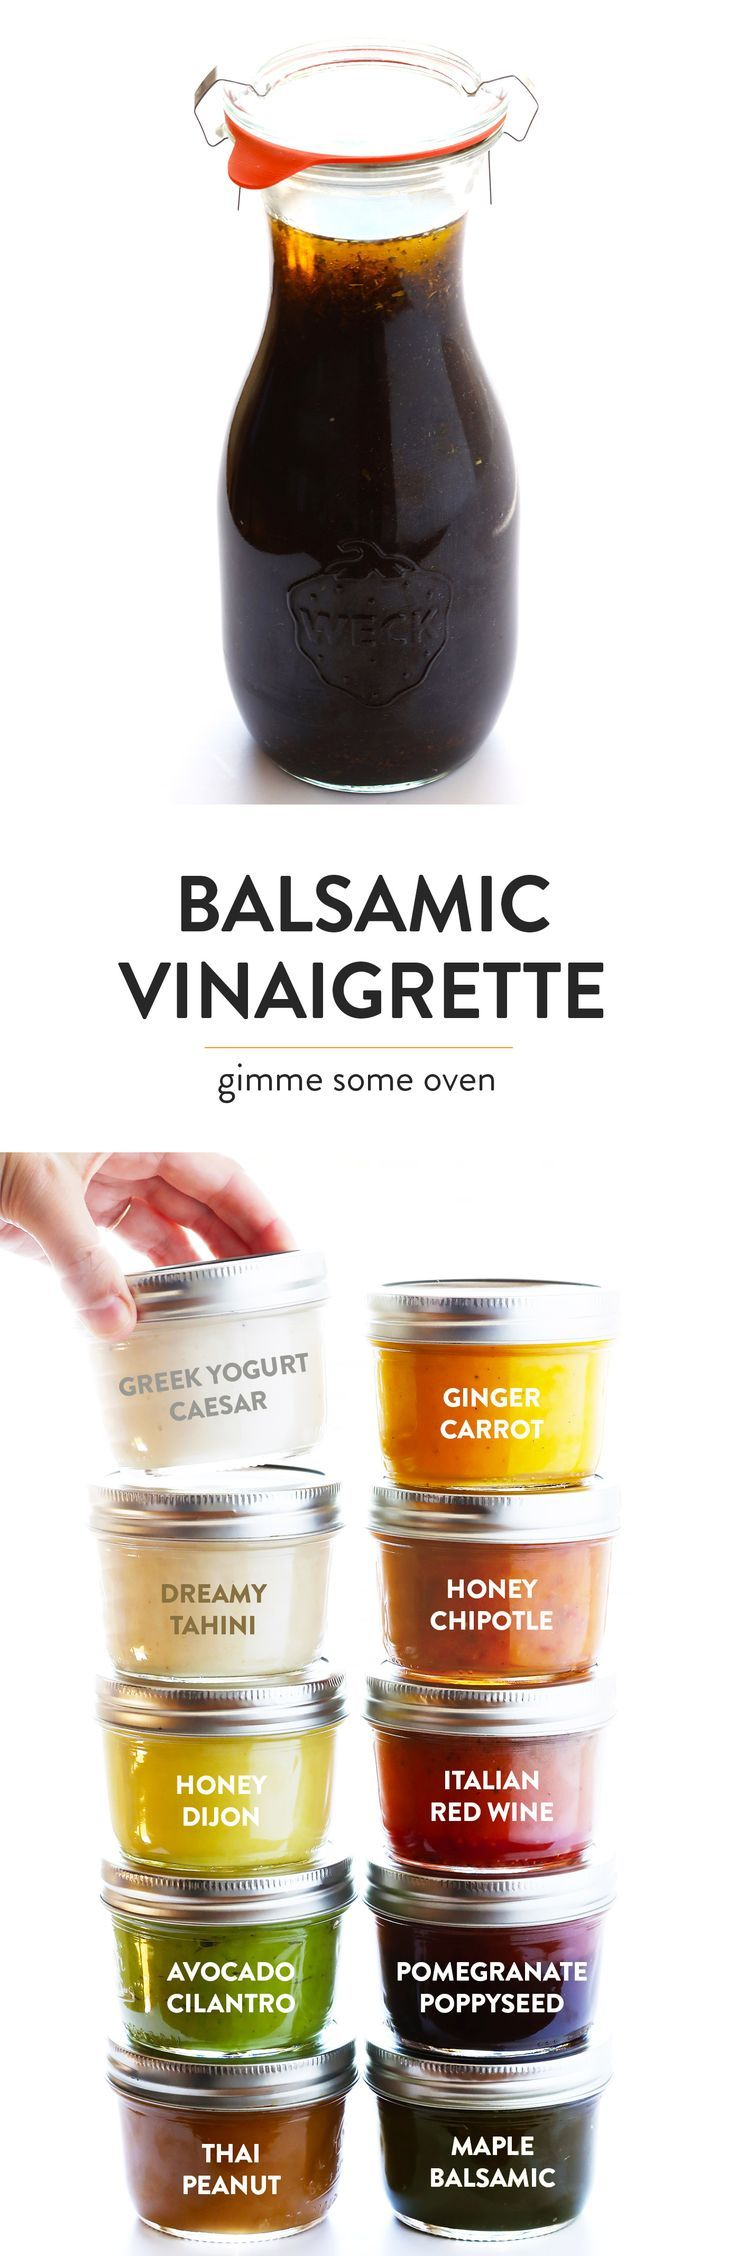 My FAVORITE Balsamic Vinaigrette recipe! It's quick and easy to make, sweetened with maple syrup, totally customizable, and it tastes great on everything from salads to vegetables to grilled chicken and beyond. | gimmesomeoven.com (Vegetarian / Vegan / Gluten-Free)